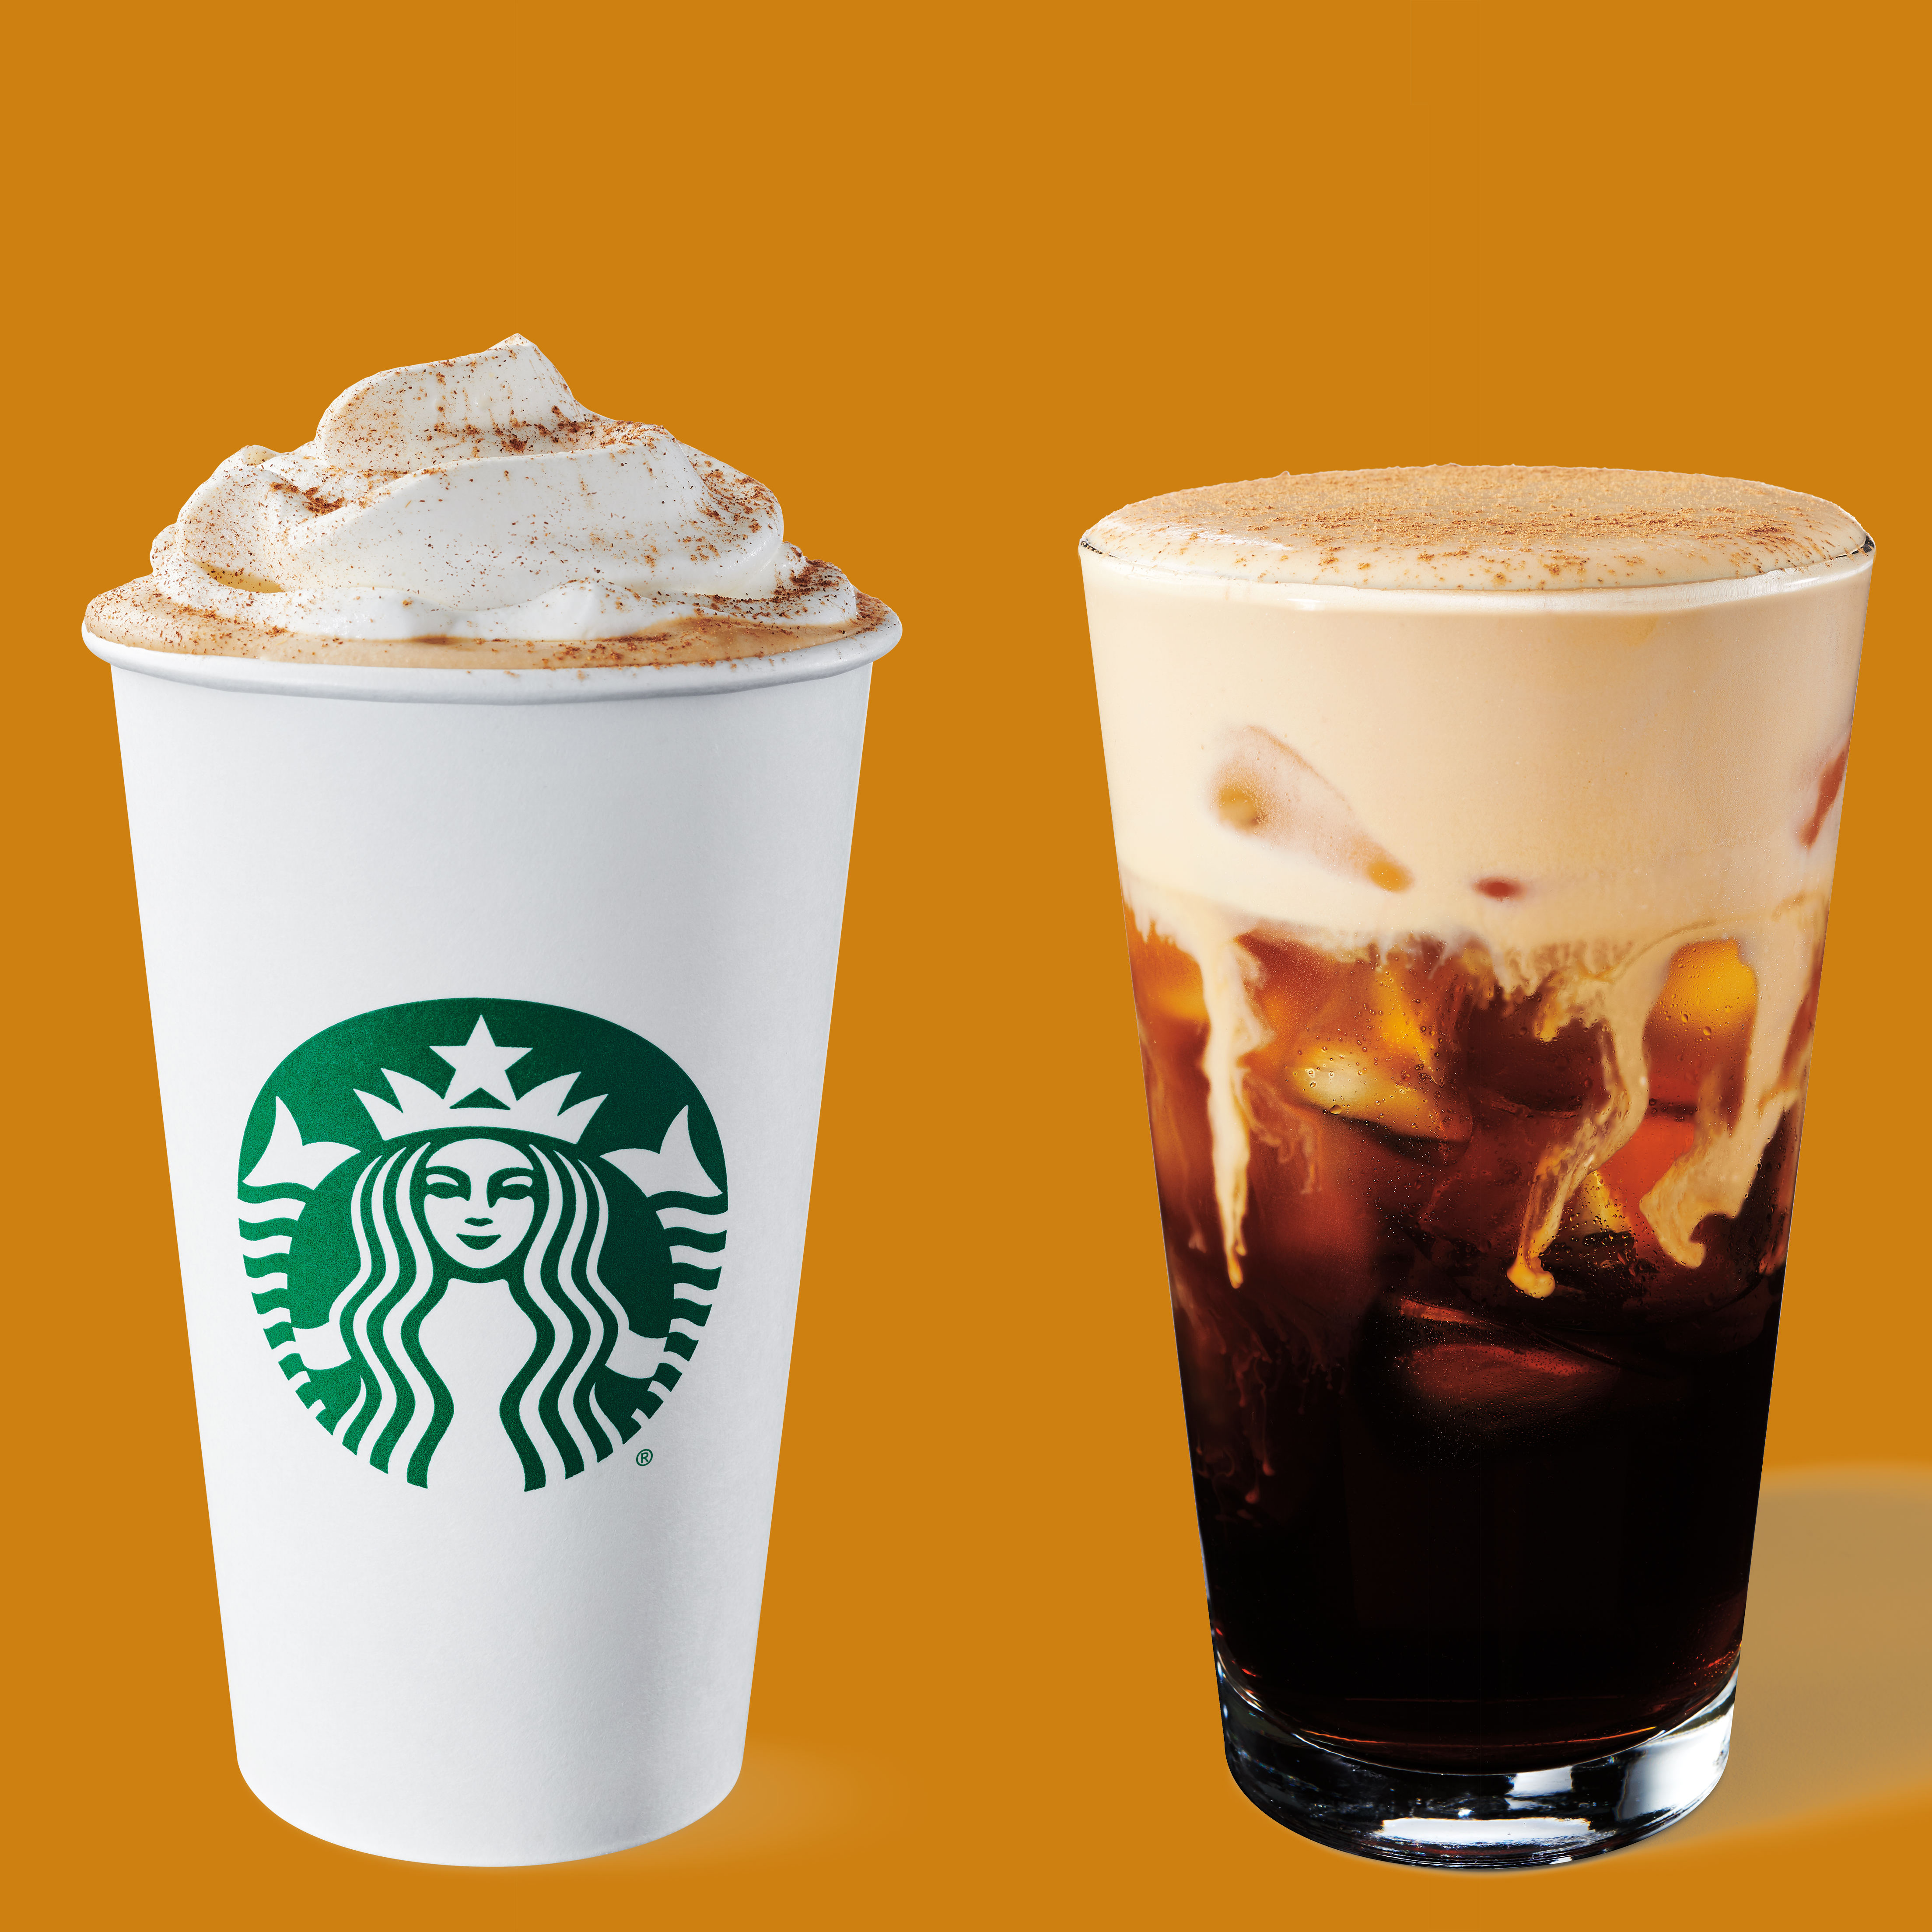 The Curious History Of Starbucks' Pumpkin Spice Latte